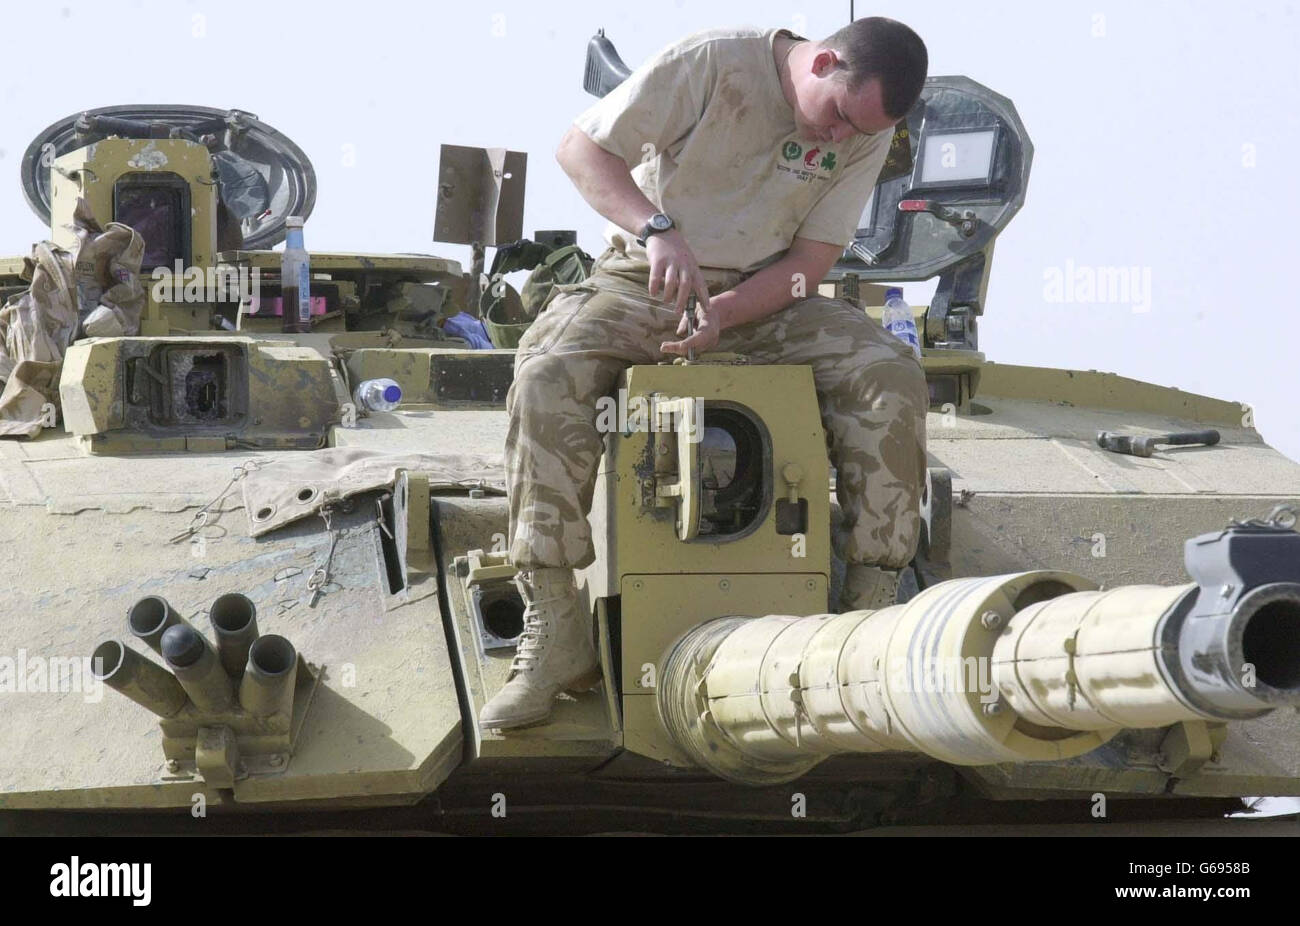 http://c7.alamy.com/comp/G6958B/soldier-repairs-damaged-tank-G6958B.jpg